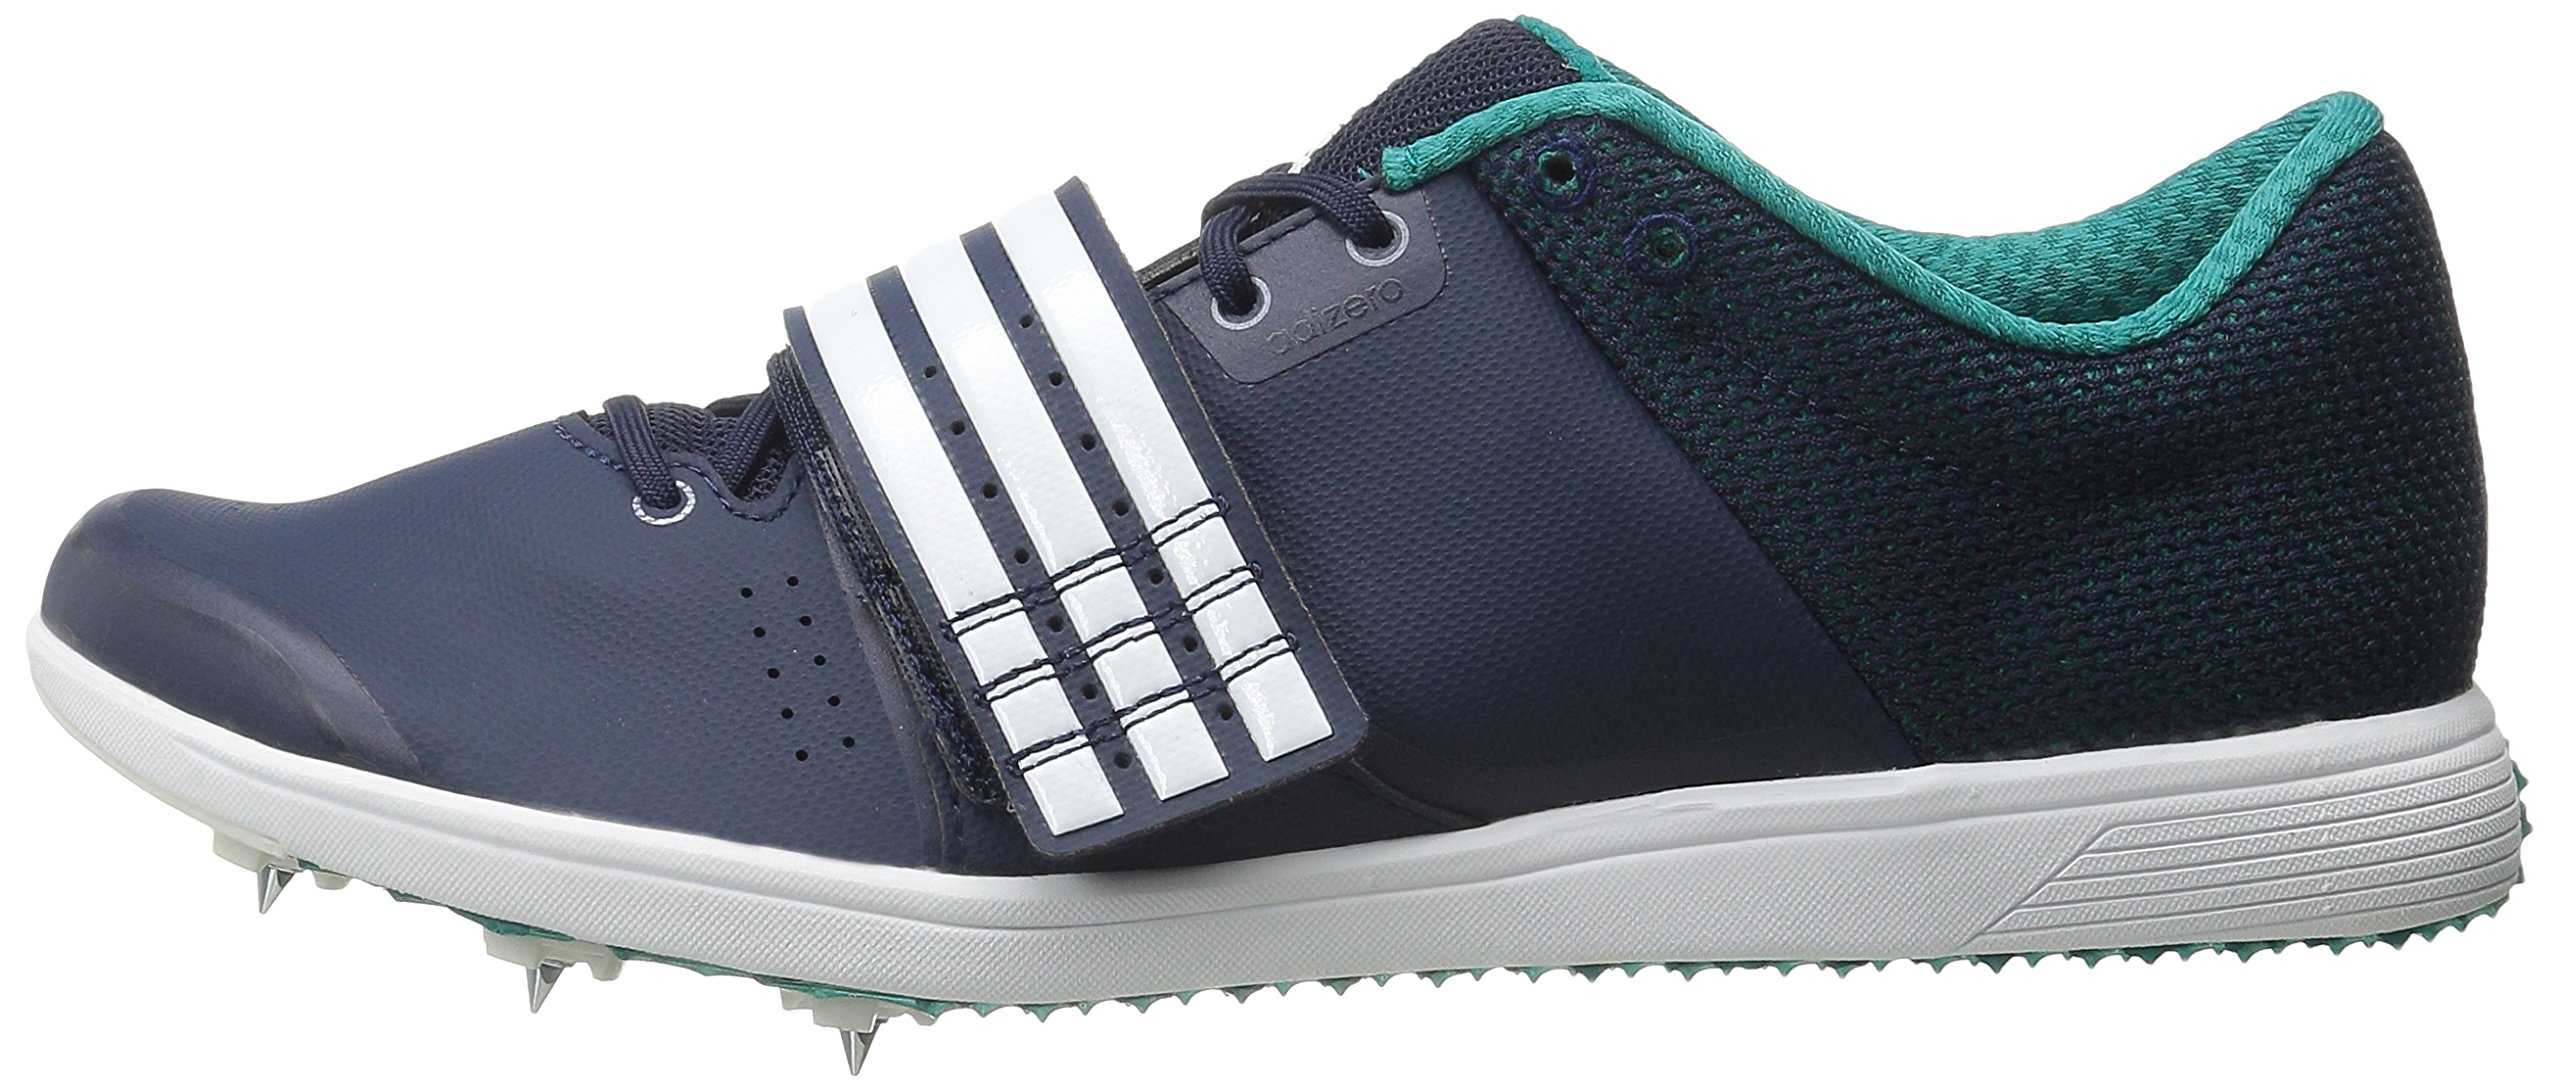 adidas Performance Women's Adizero TJ/PV Running Shoe with Spikes,Collegiate Navy/White/Green,14 M US by adidas (Image #5)